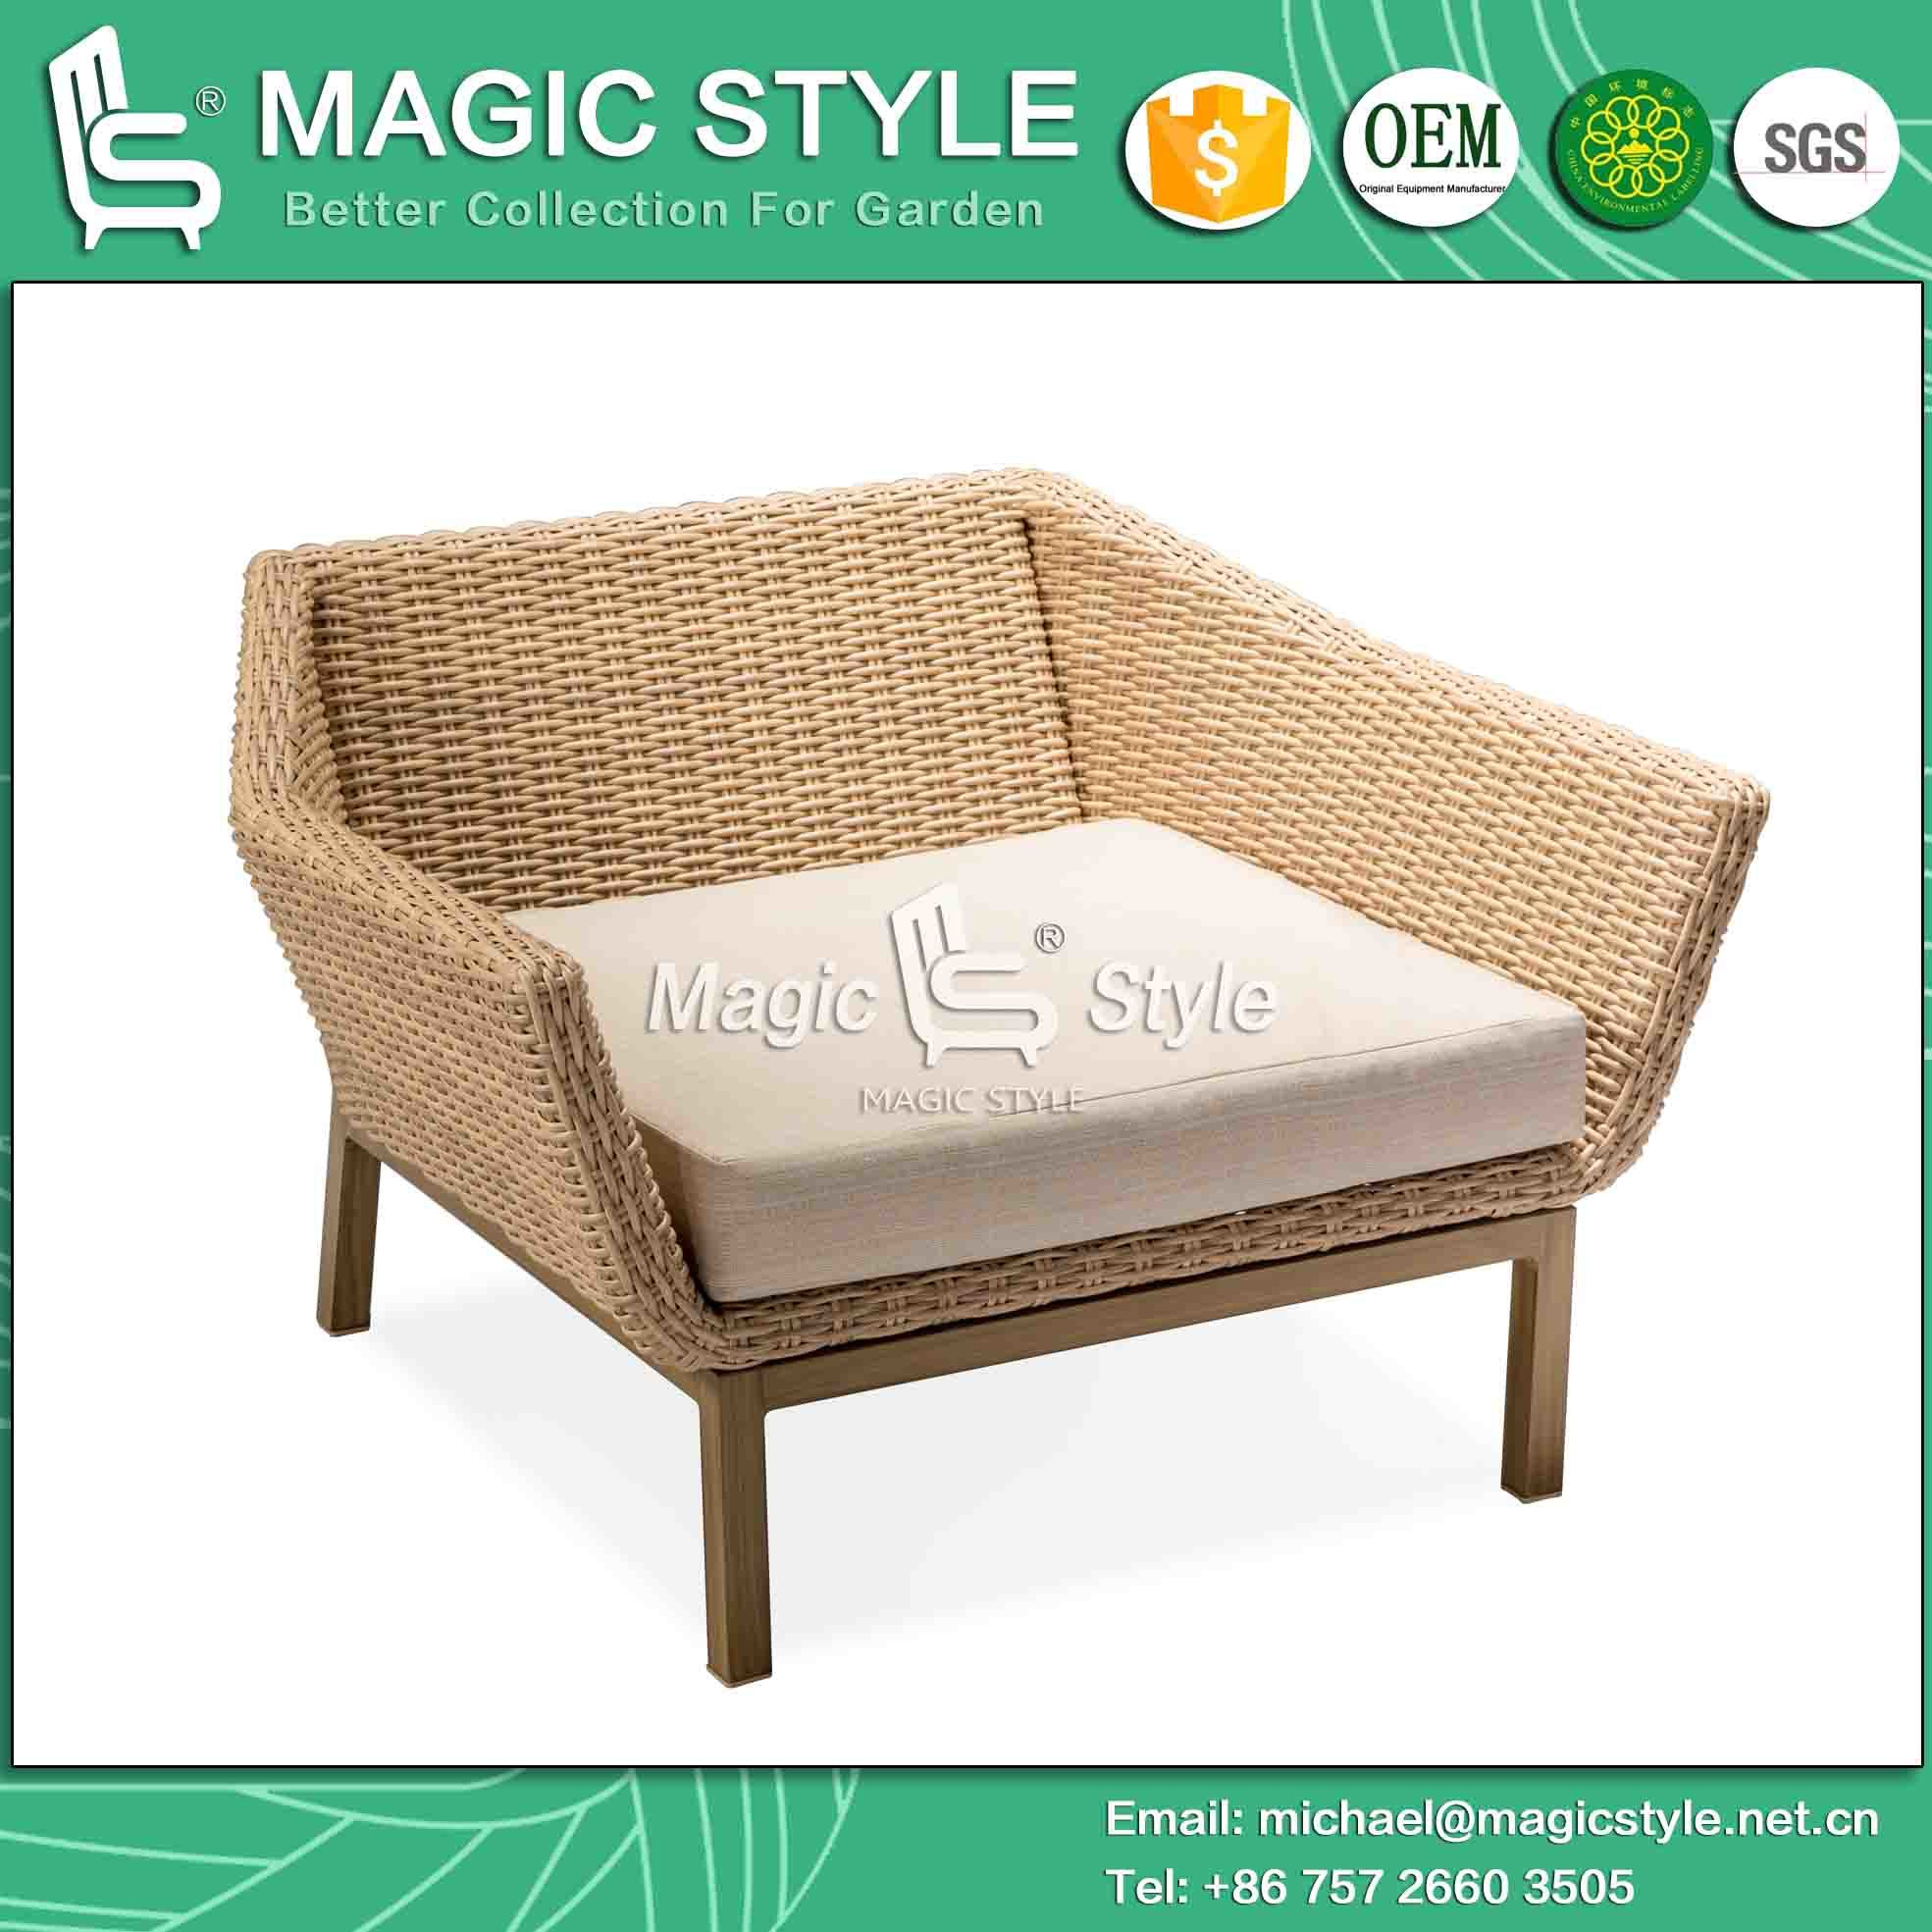 Garden Sofa with Cushion Outdoor Sofa with Printing Legs Rattan Corner Sofa Set Garden Sofa Set Patio Furniture Wicker Furniture pictures & photos